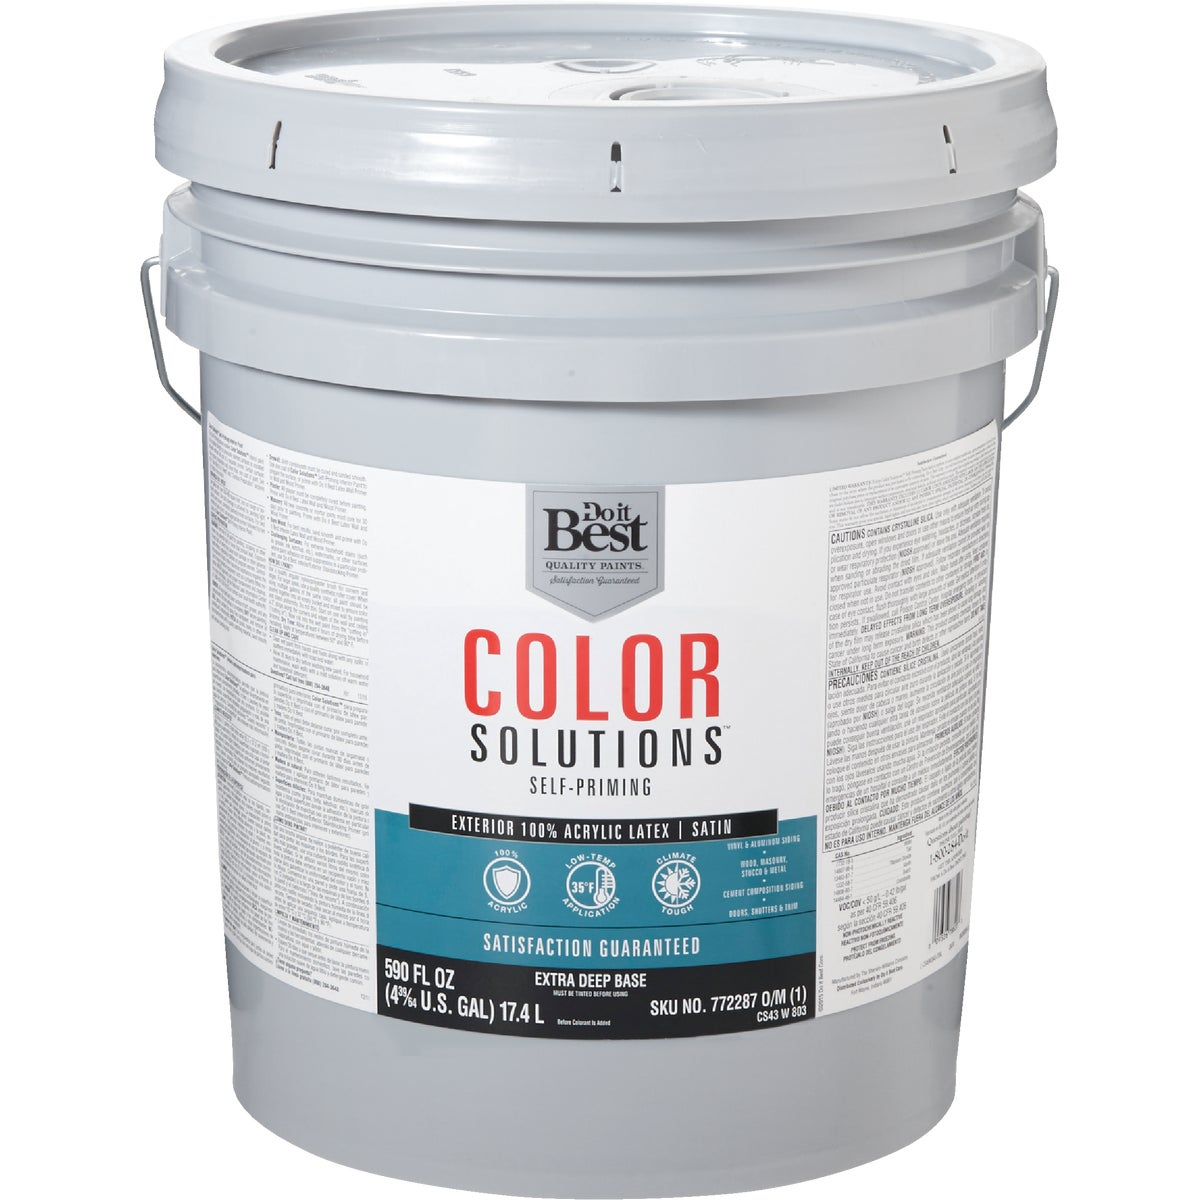 EXT SAT EX DEEP BS PAINT - CS43W0803-20 by Do it Best